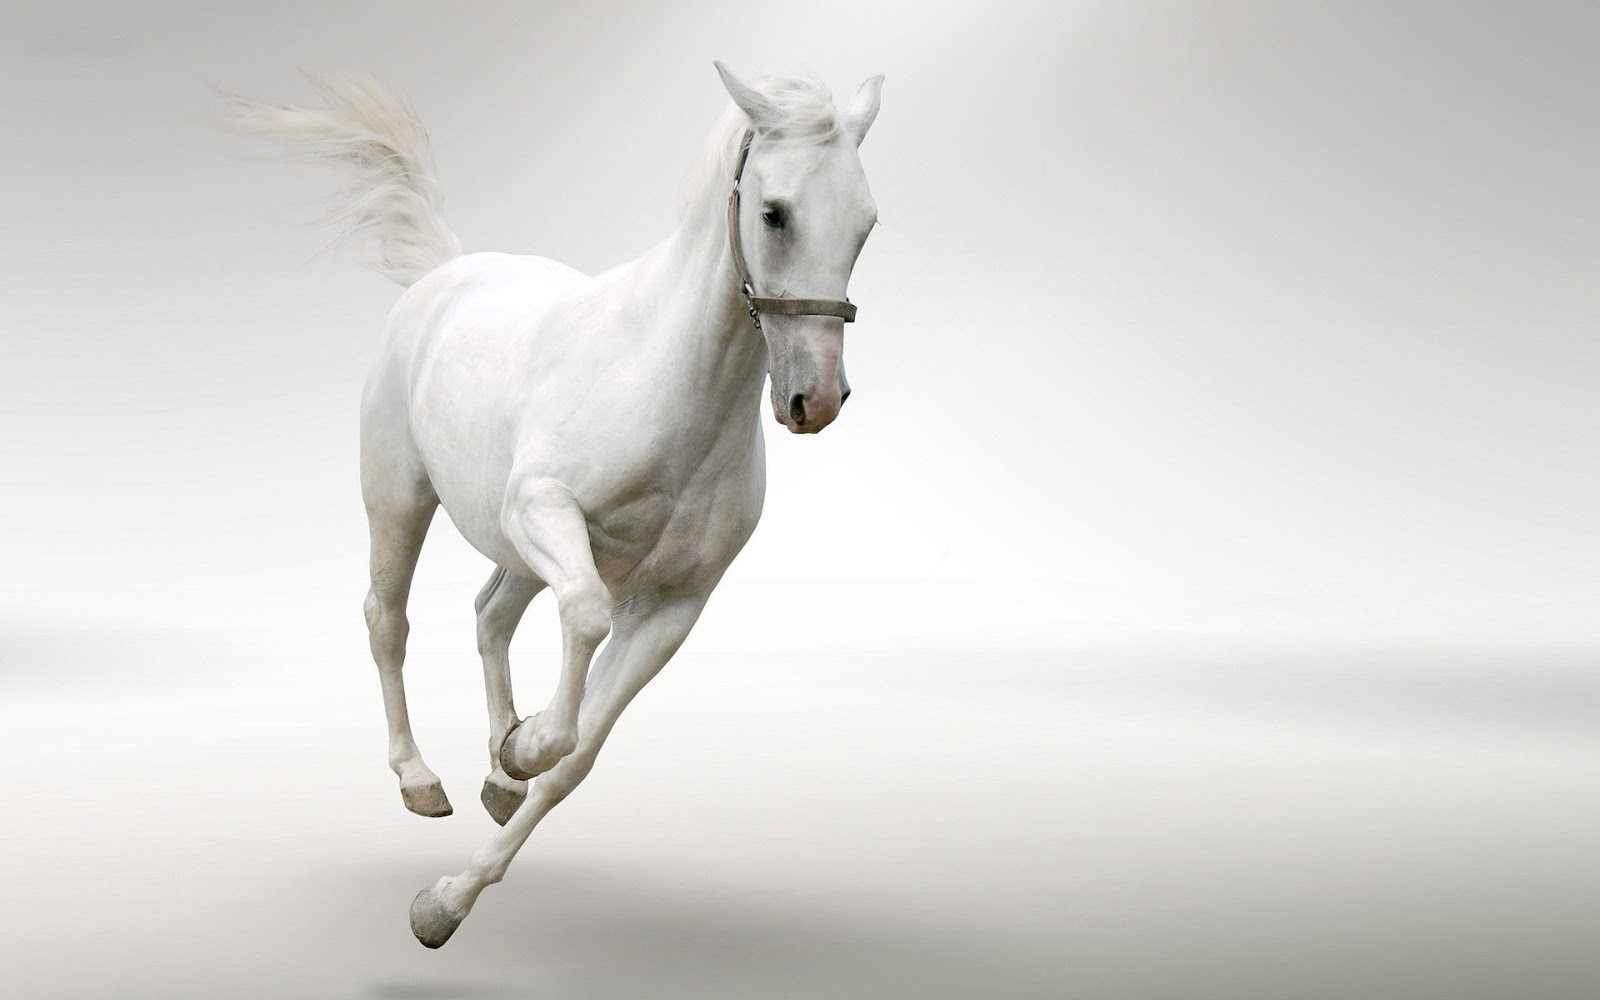 Horse Wallpapers HD Pictures One HD Wallpaper Pictures Backgrounds 1600x1000